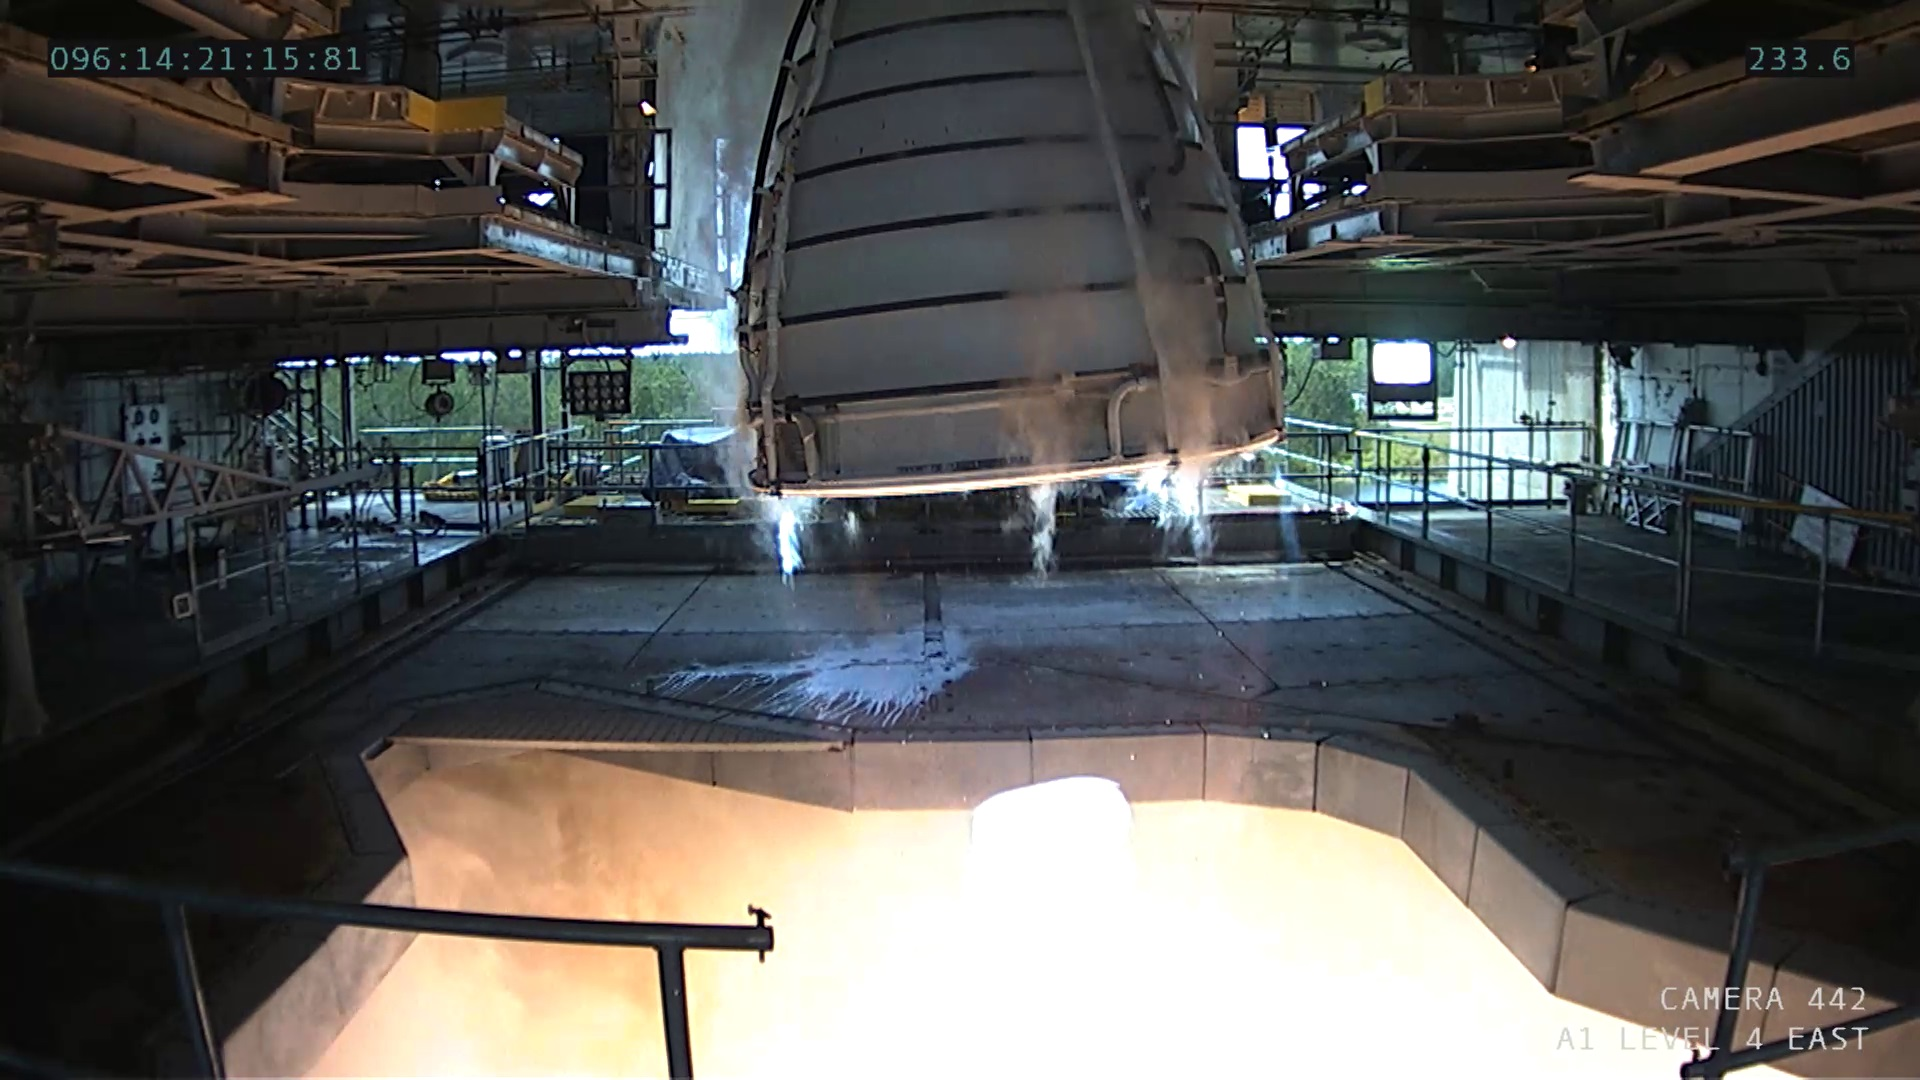 Aerojet Rocketdyne refurbishing RS-25 engines for Artemis 1 launch and production restart testing